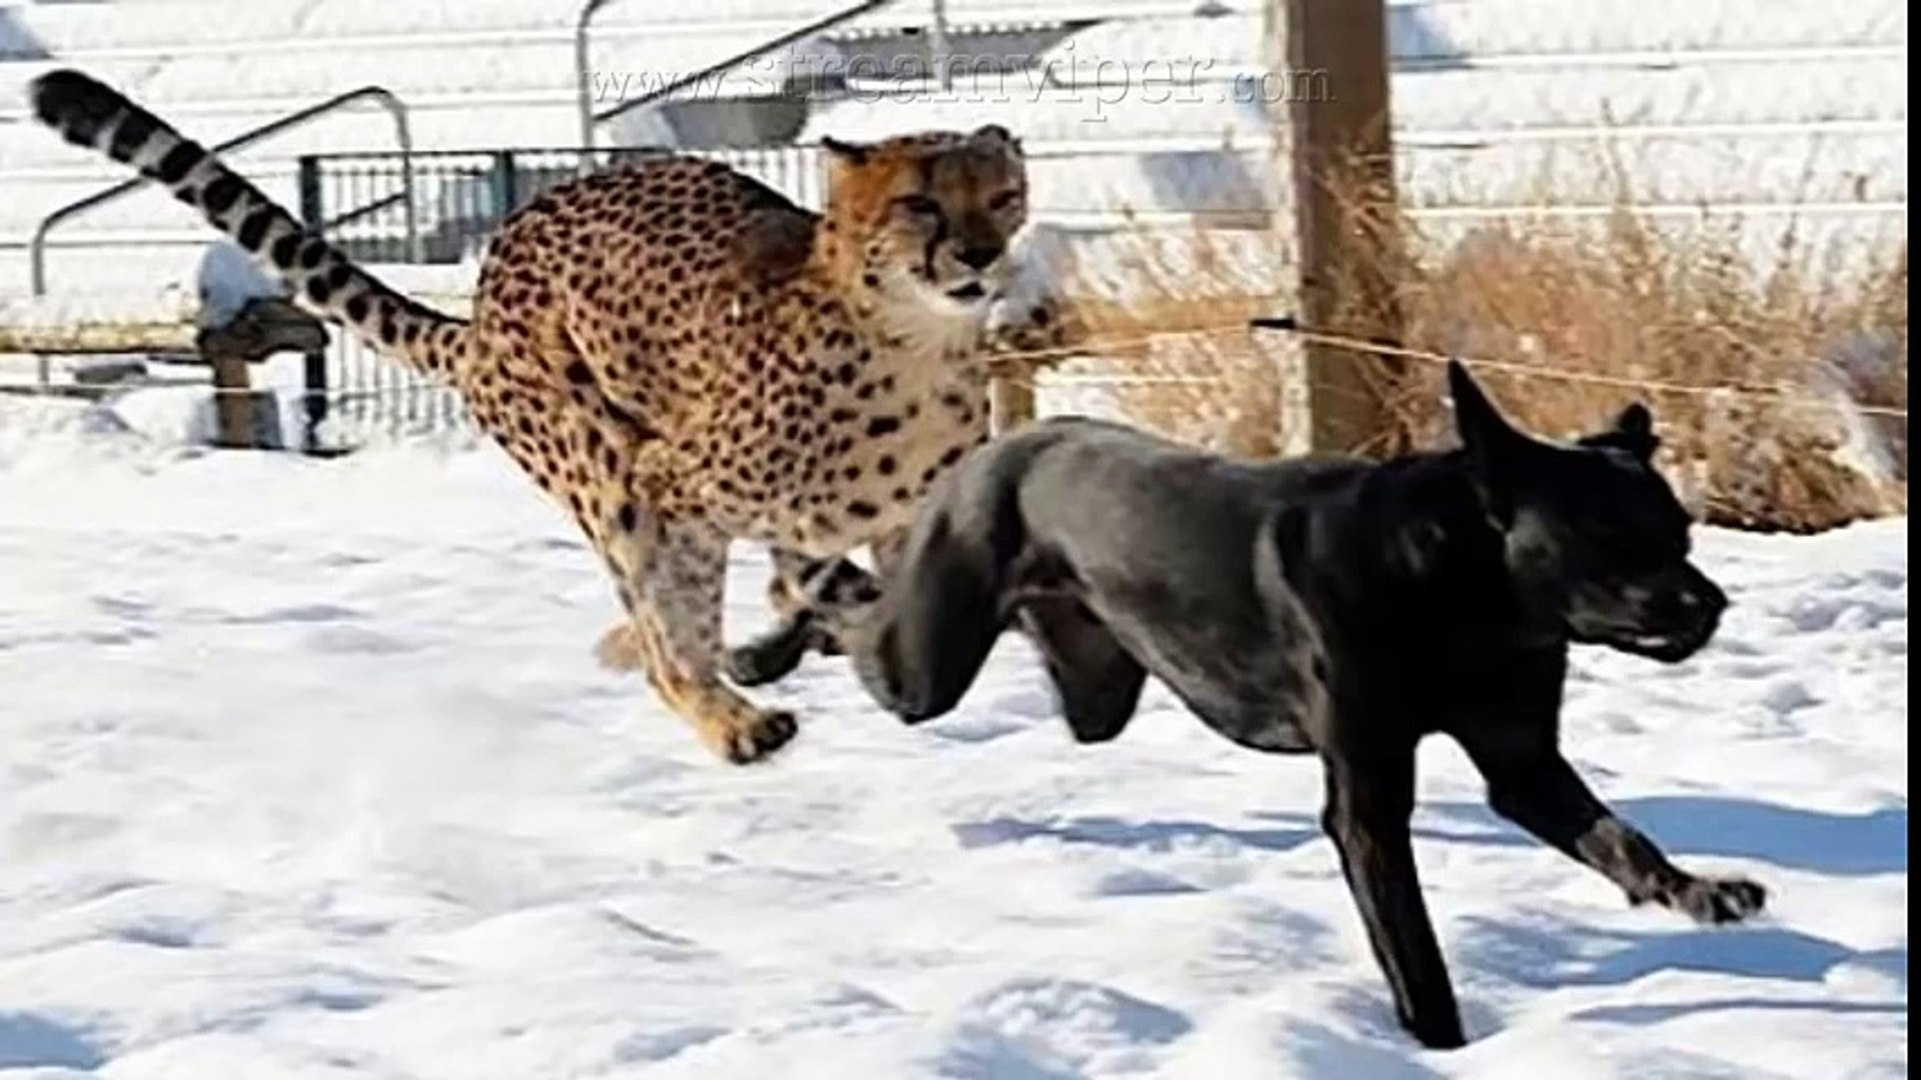 Pet Dogs vs Leopard   Sudden Death As 3 Pet Dogs Attack Wild Leopard - (CCTV Footage)